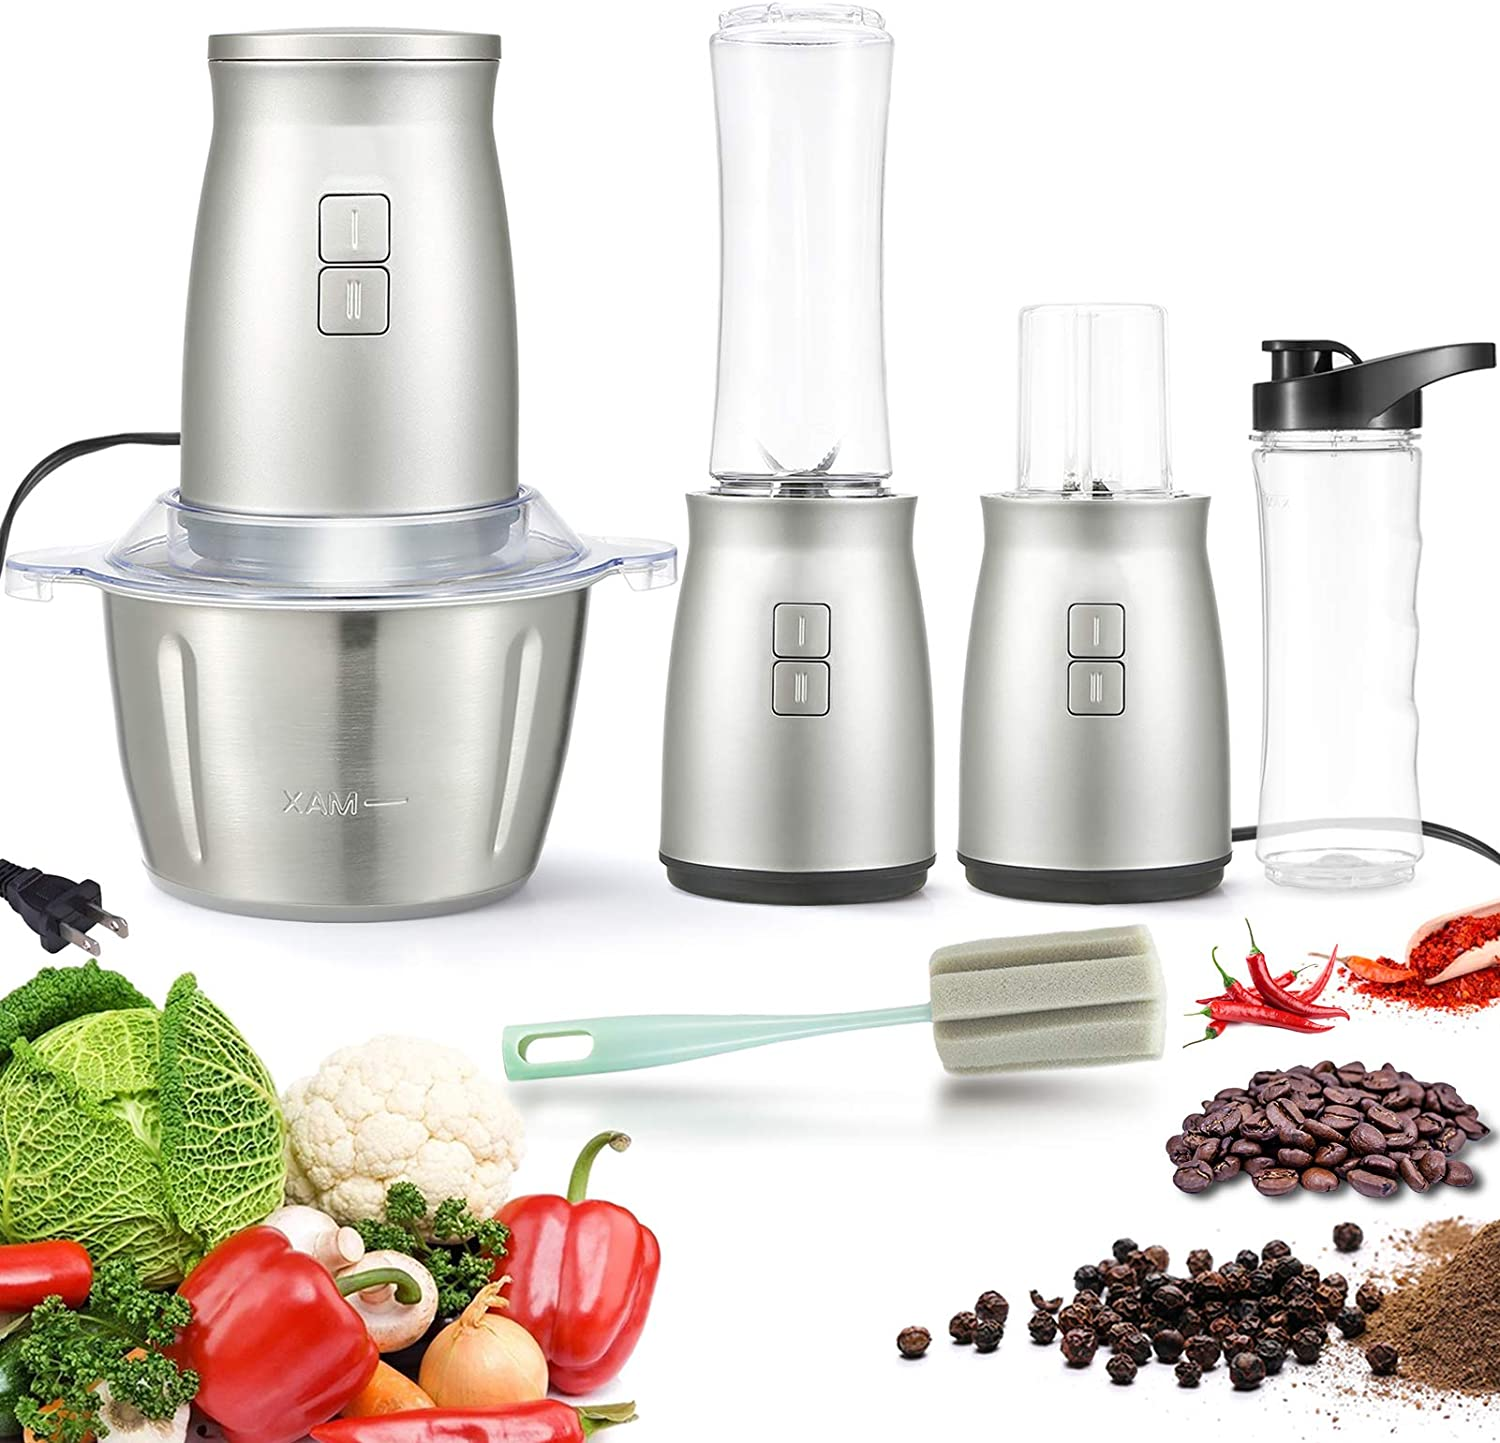 Food Processor, 3 in 1 Electric Food Processor Food Chopper Personal Blender 2L Stainless Steel Kitchen Electric Meat Grinder with 2 Speed and 4 Bi-Level Blades for Meat, Vegetables, Fruits and Nuts